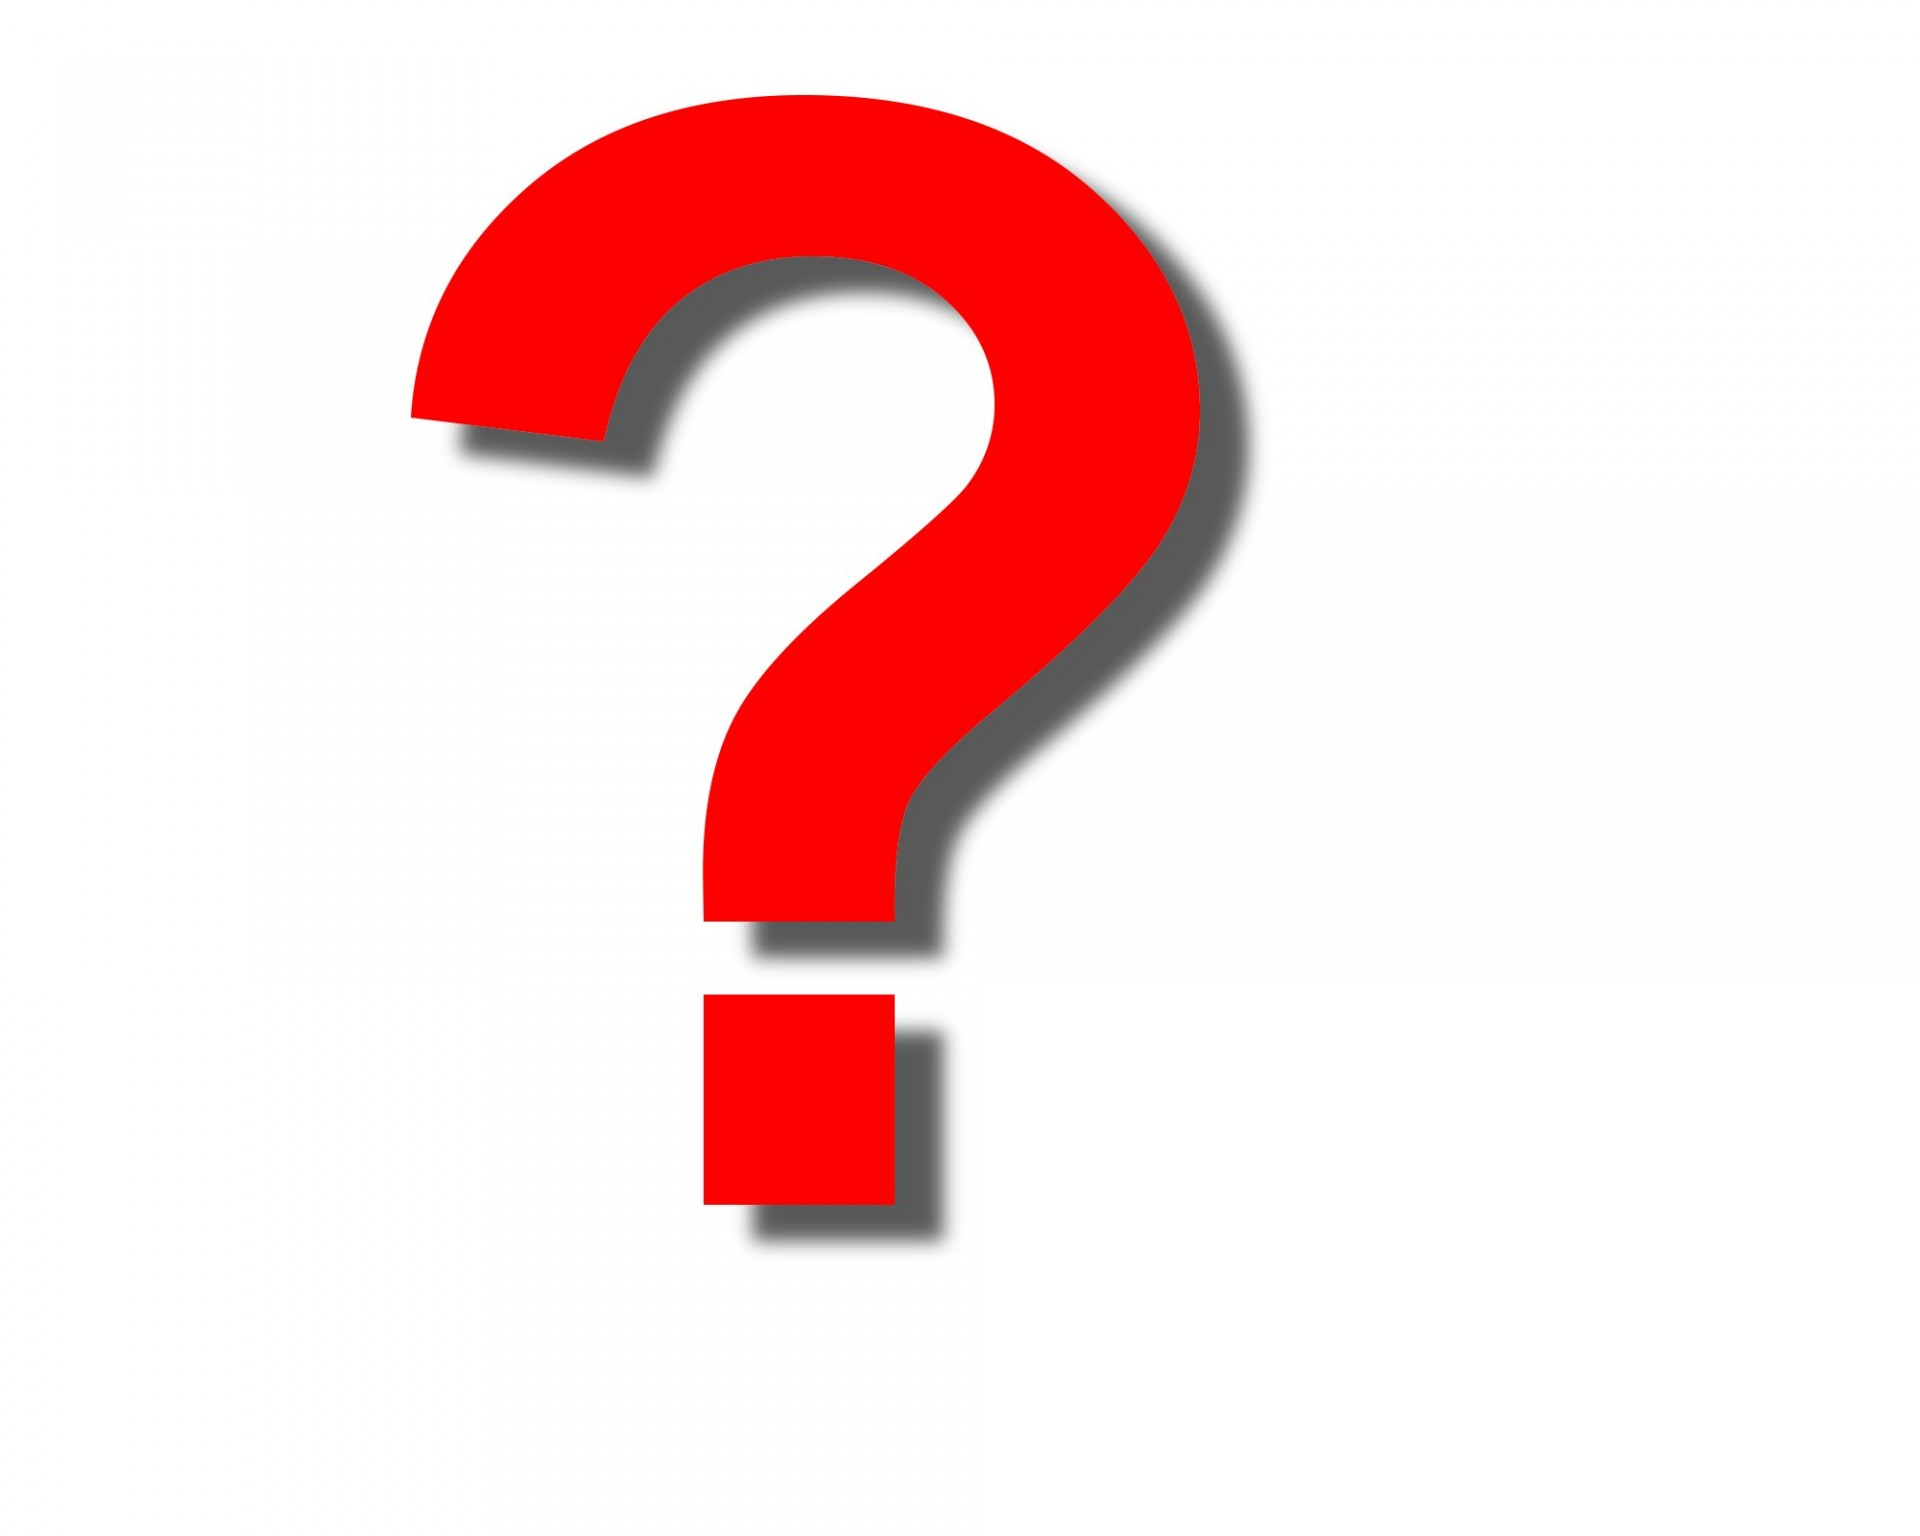 1920x1536 Question Mark Free Stock Photo